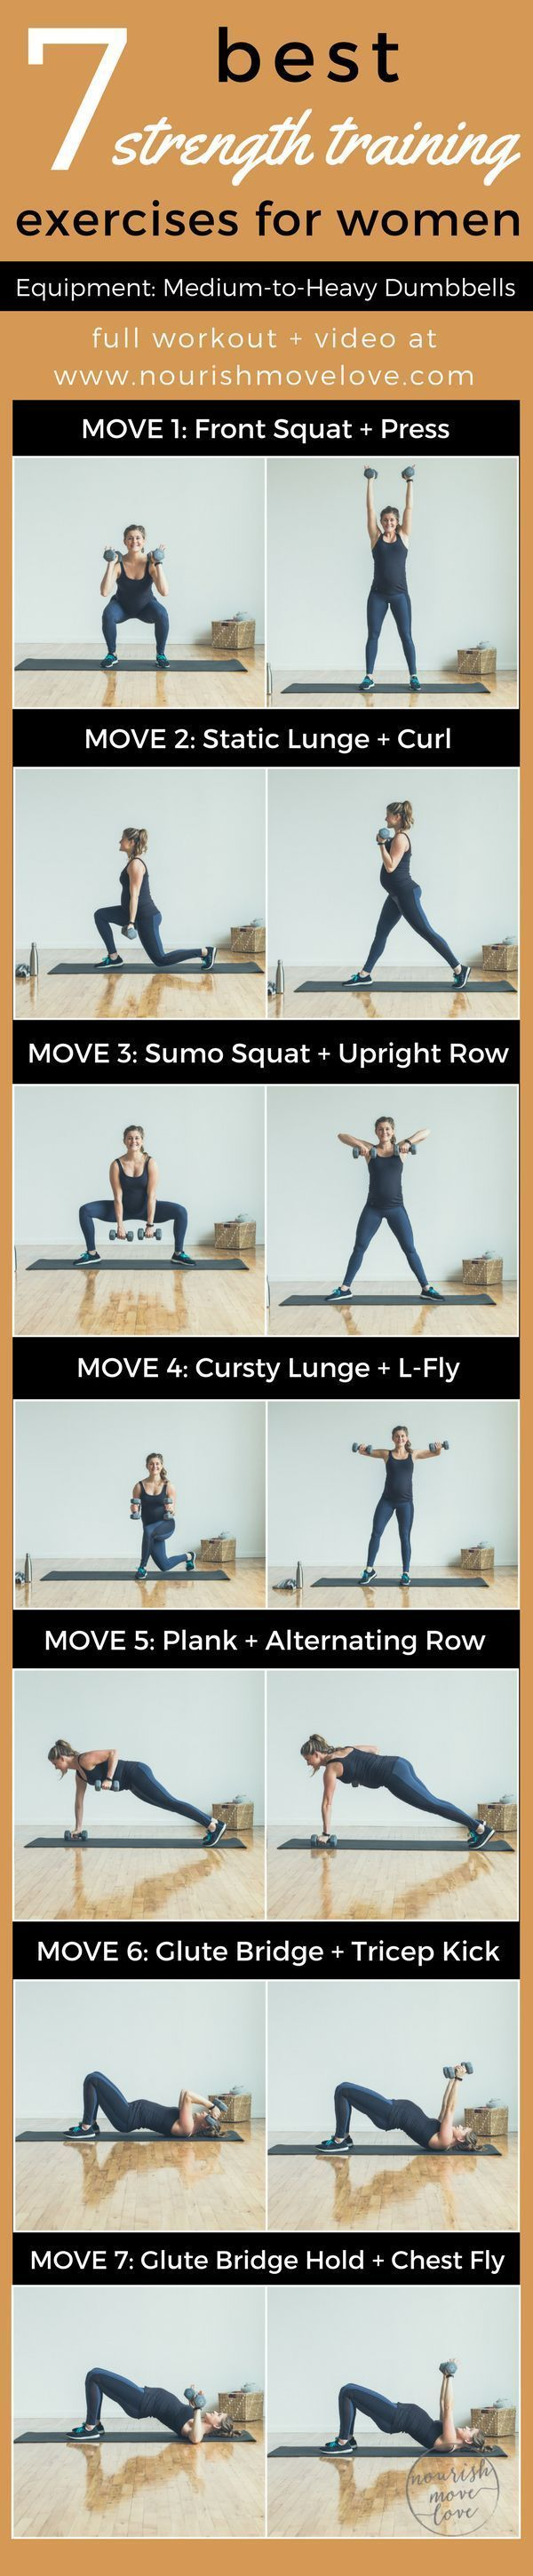 7 Best Strength Training Exercises for Women. An at-home total body workout challenge. 30-minute workout. Squat, press, lunge, curl, row, kick, fly; bicep, back, tricep, chest, glutes | www.nourishmovelove.com